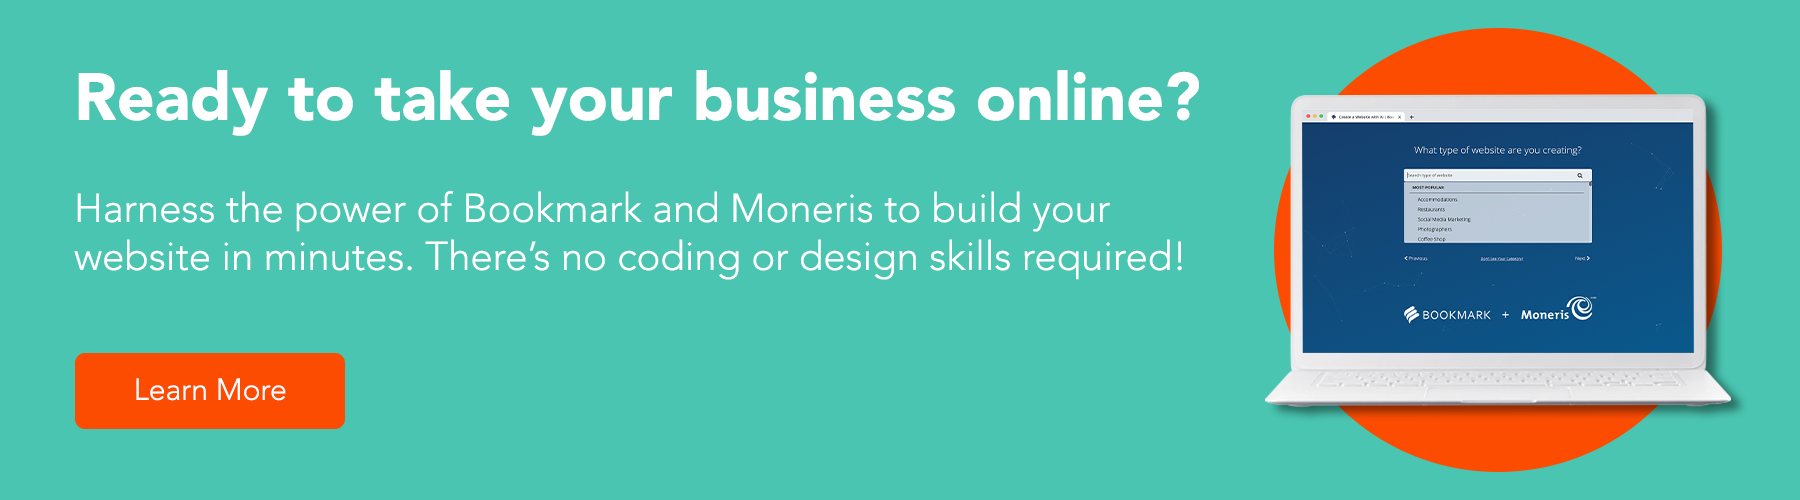 Ready to take your business online? Harness the power of Bookmark and Moneris to build your website in minutes. There's no coding or design skills required!